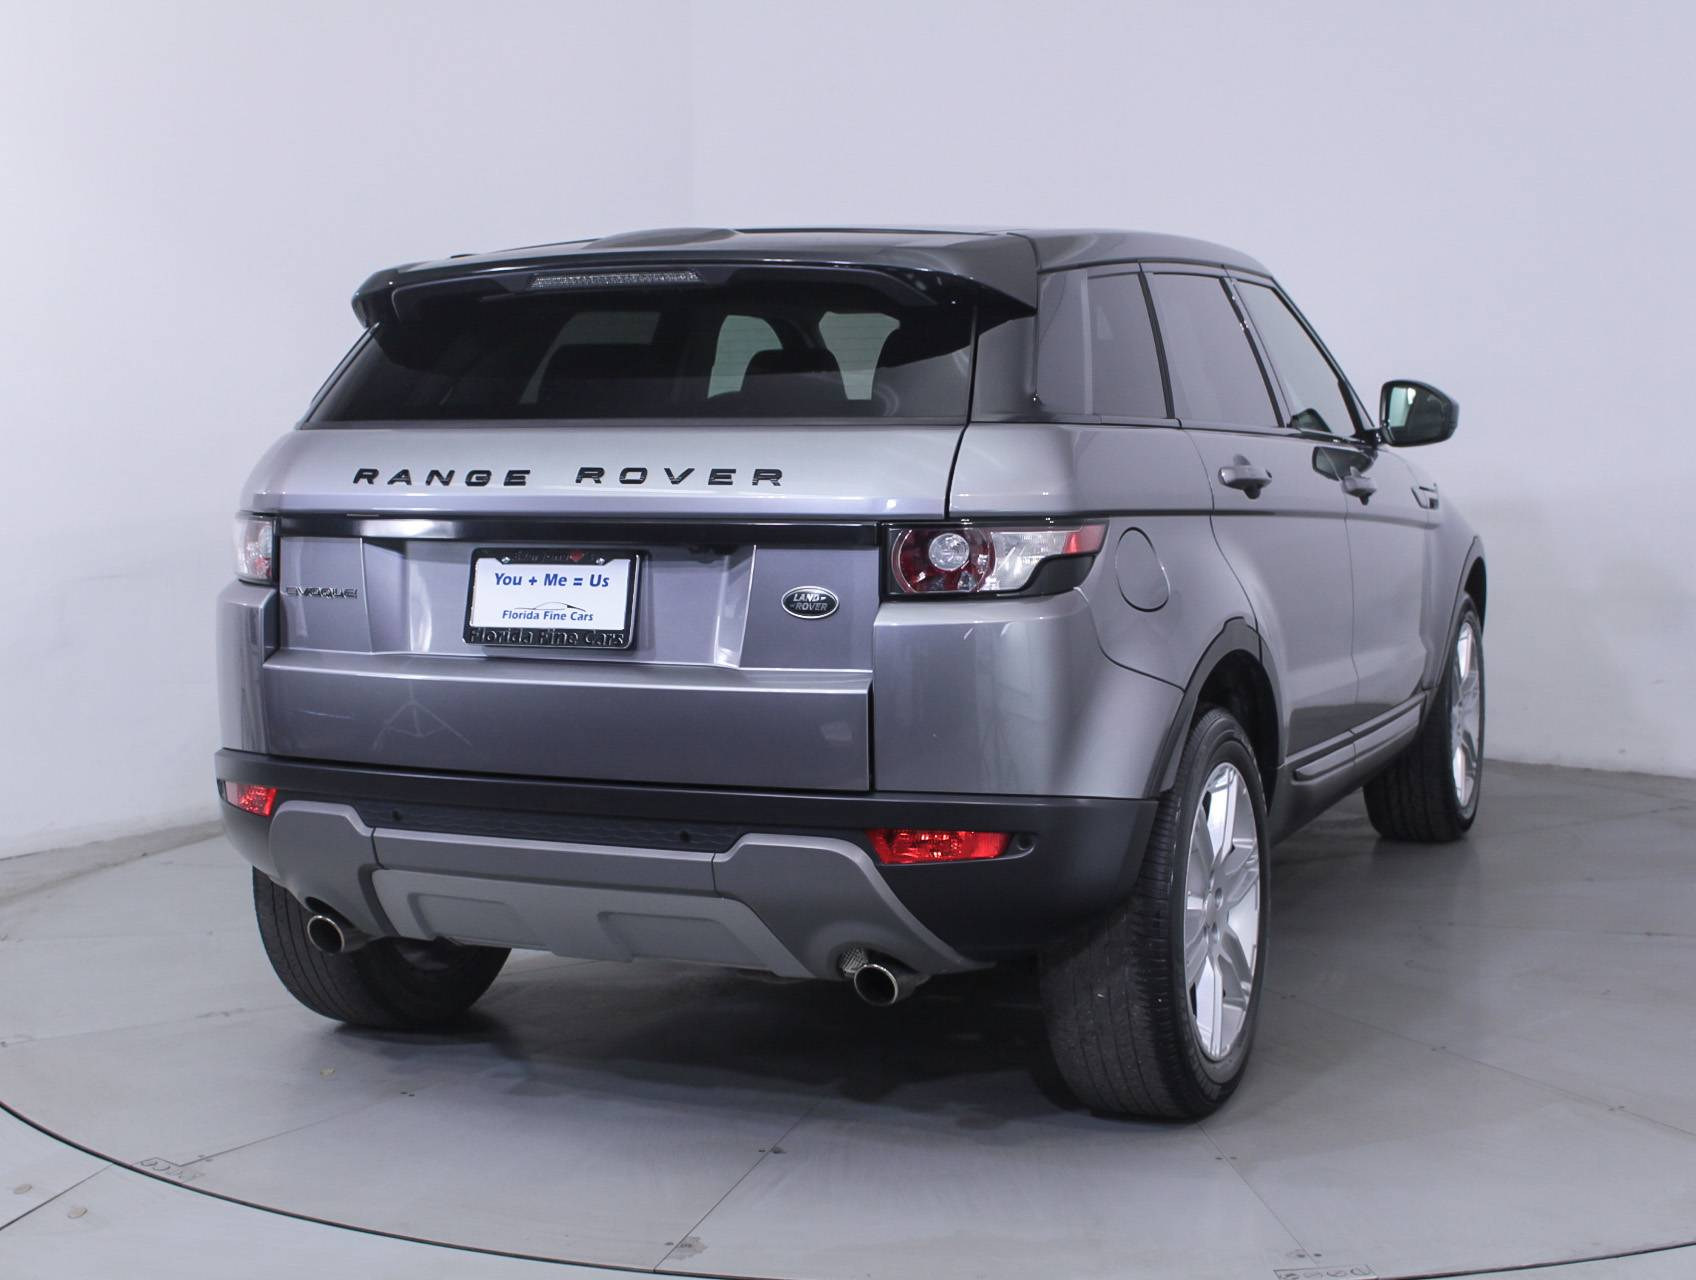 coupe dynamic exhaust in land watch range depth and tour start up landrover pure evoque rover plus youtube